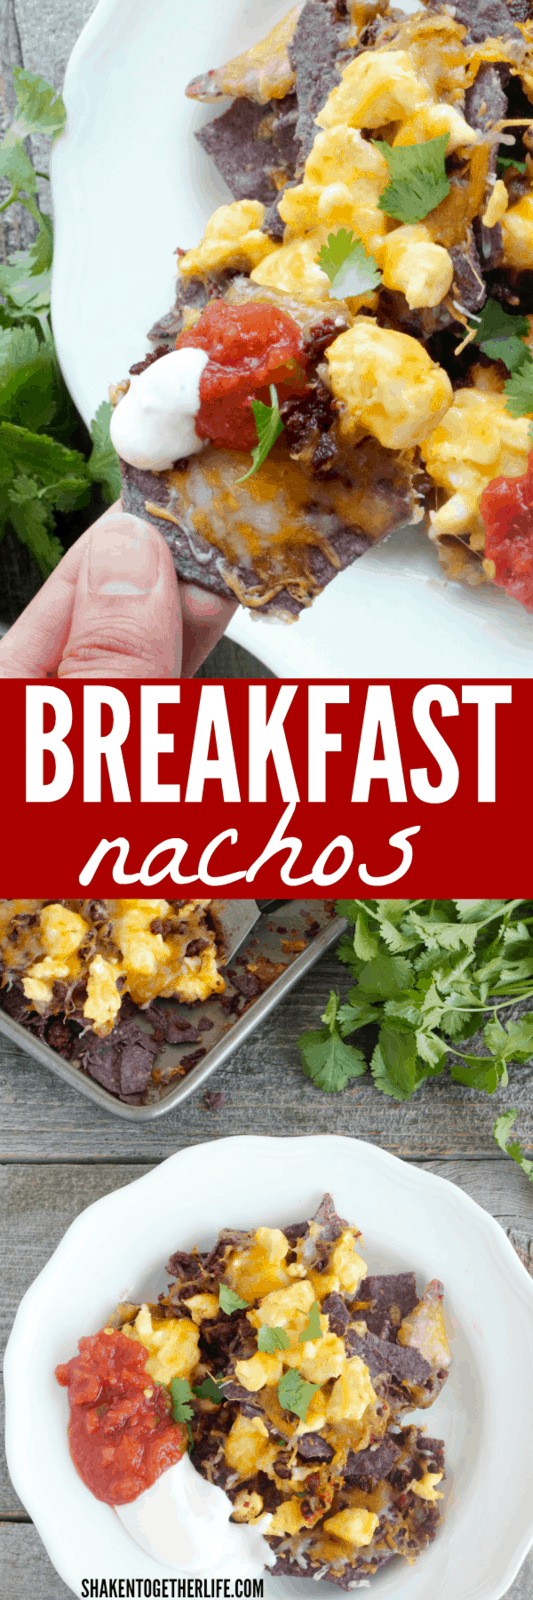 Breakfast Nachos - piled high with cheese, scrambled eggs and chorizo - are the perfect start to the day! Great dish for Cinco de Mayo!